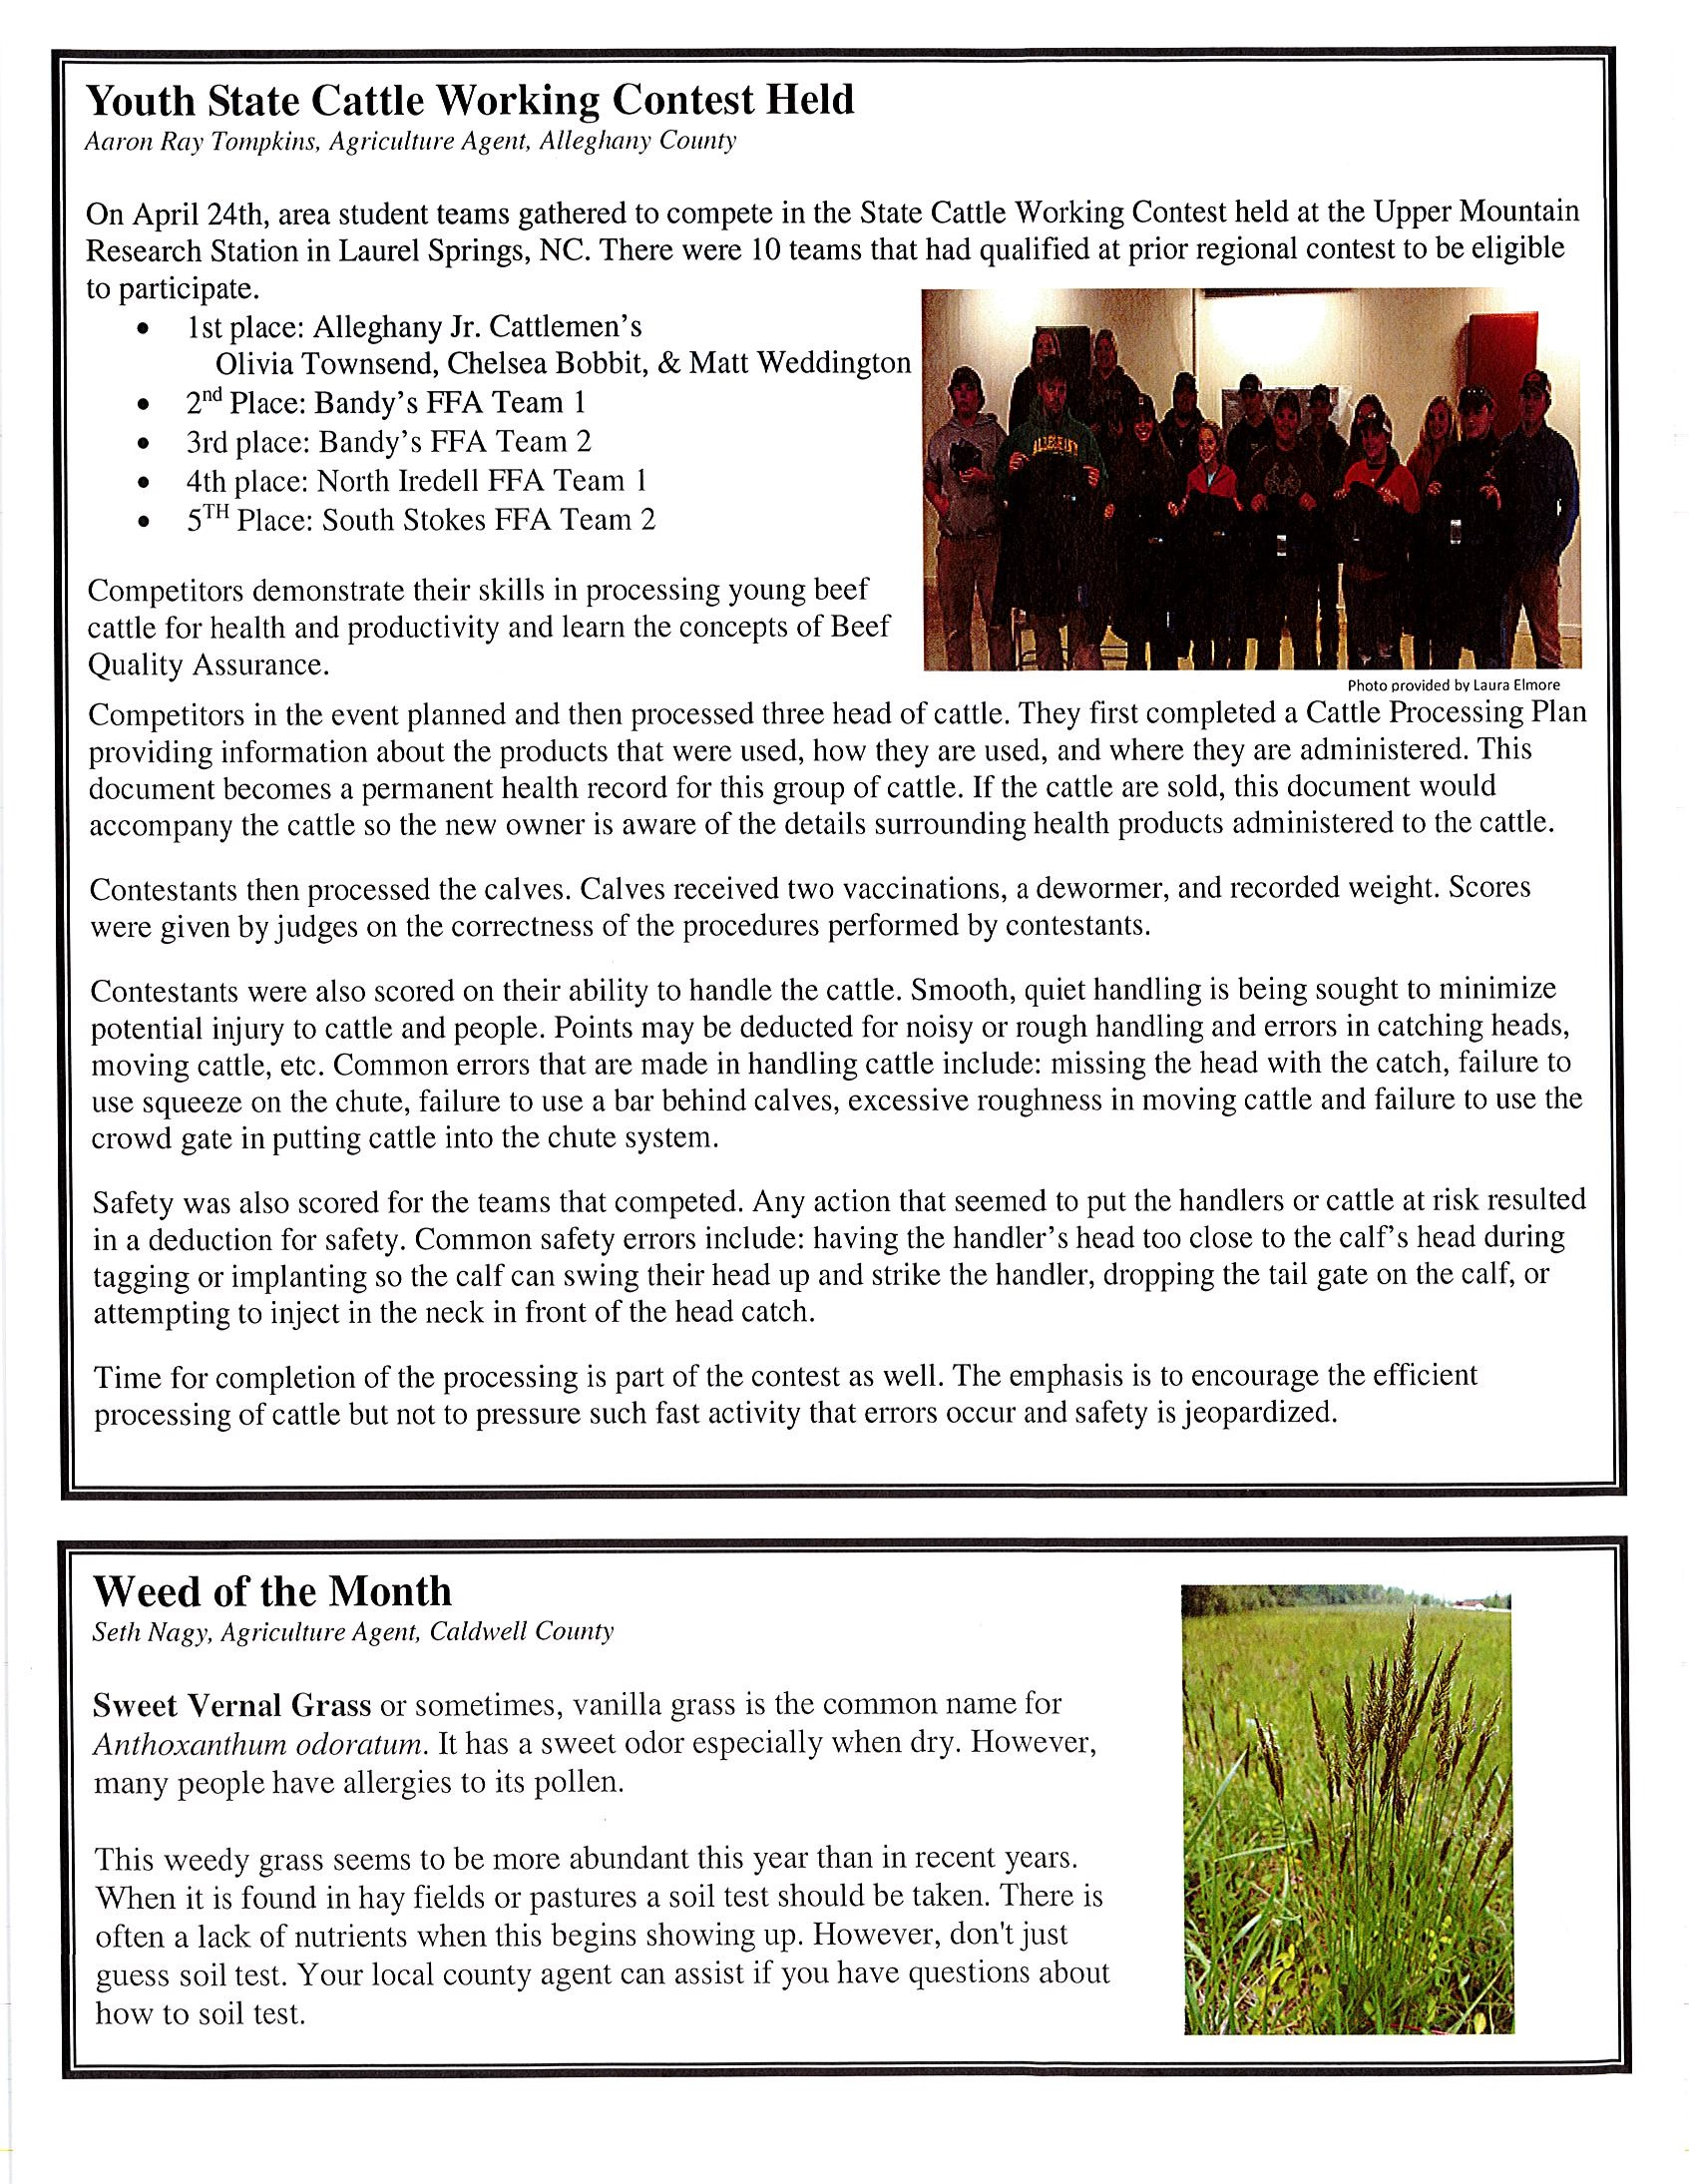 Cattle Call newsletter image 2